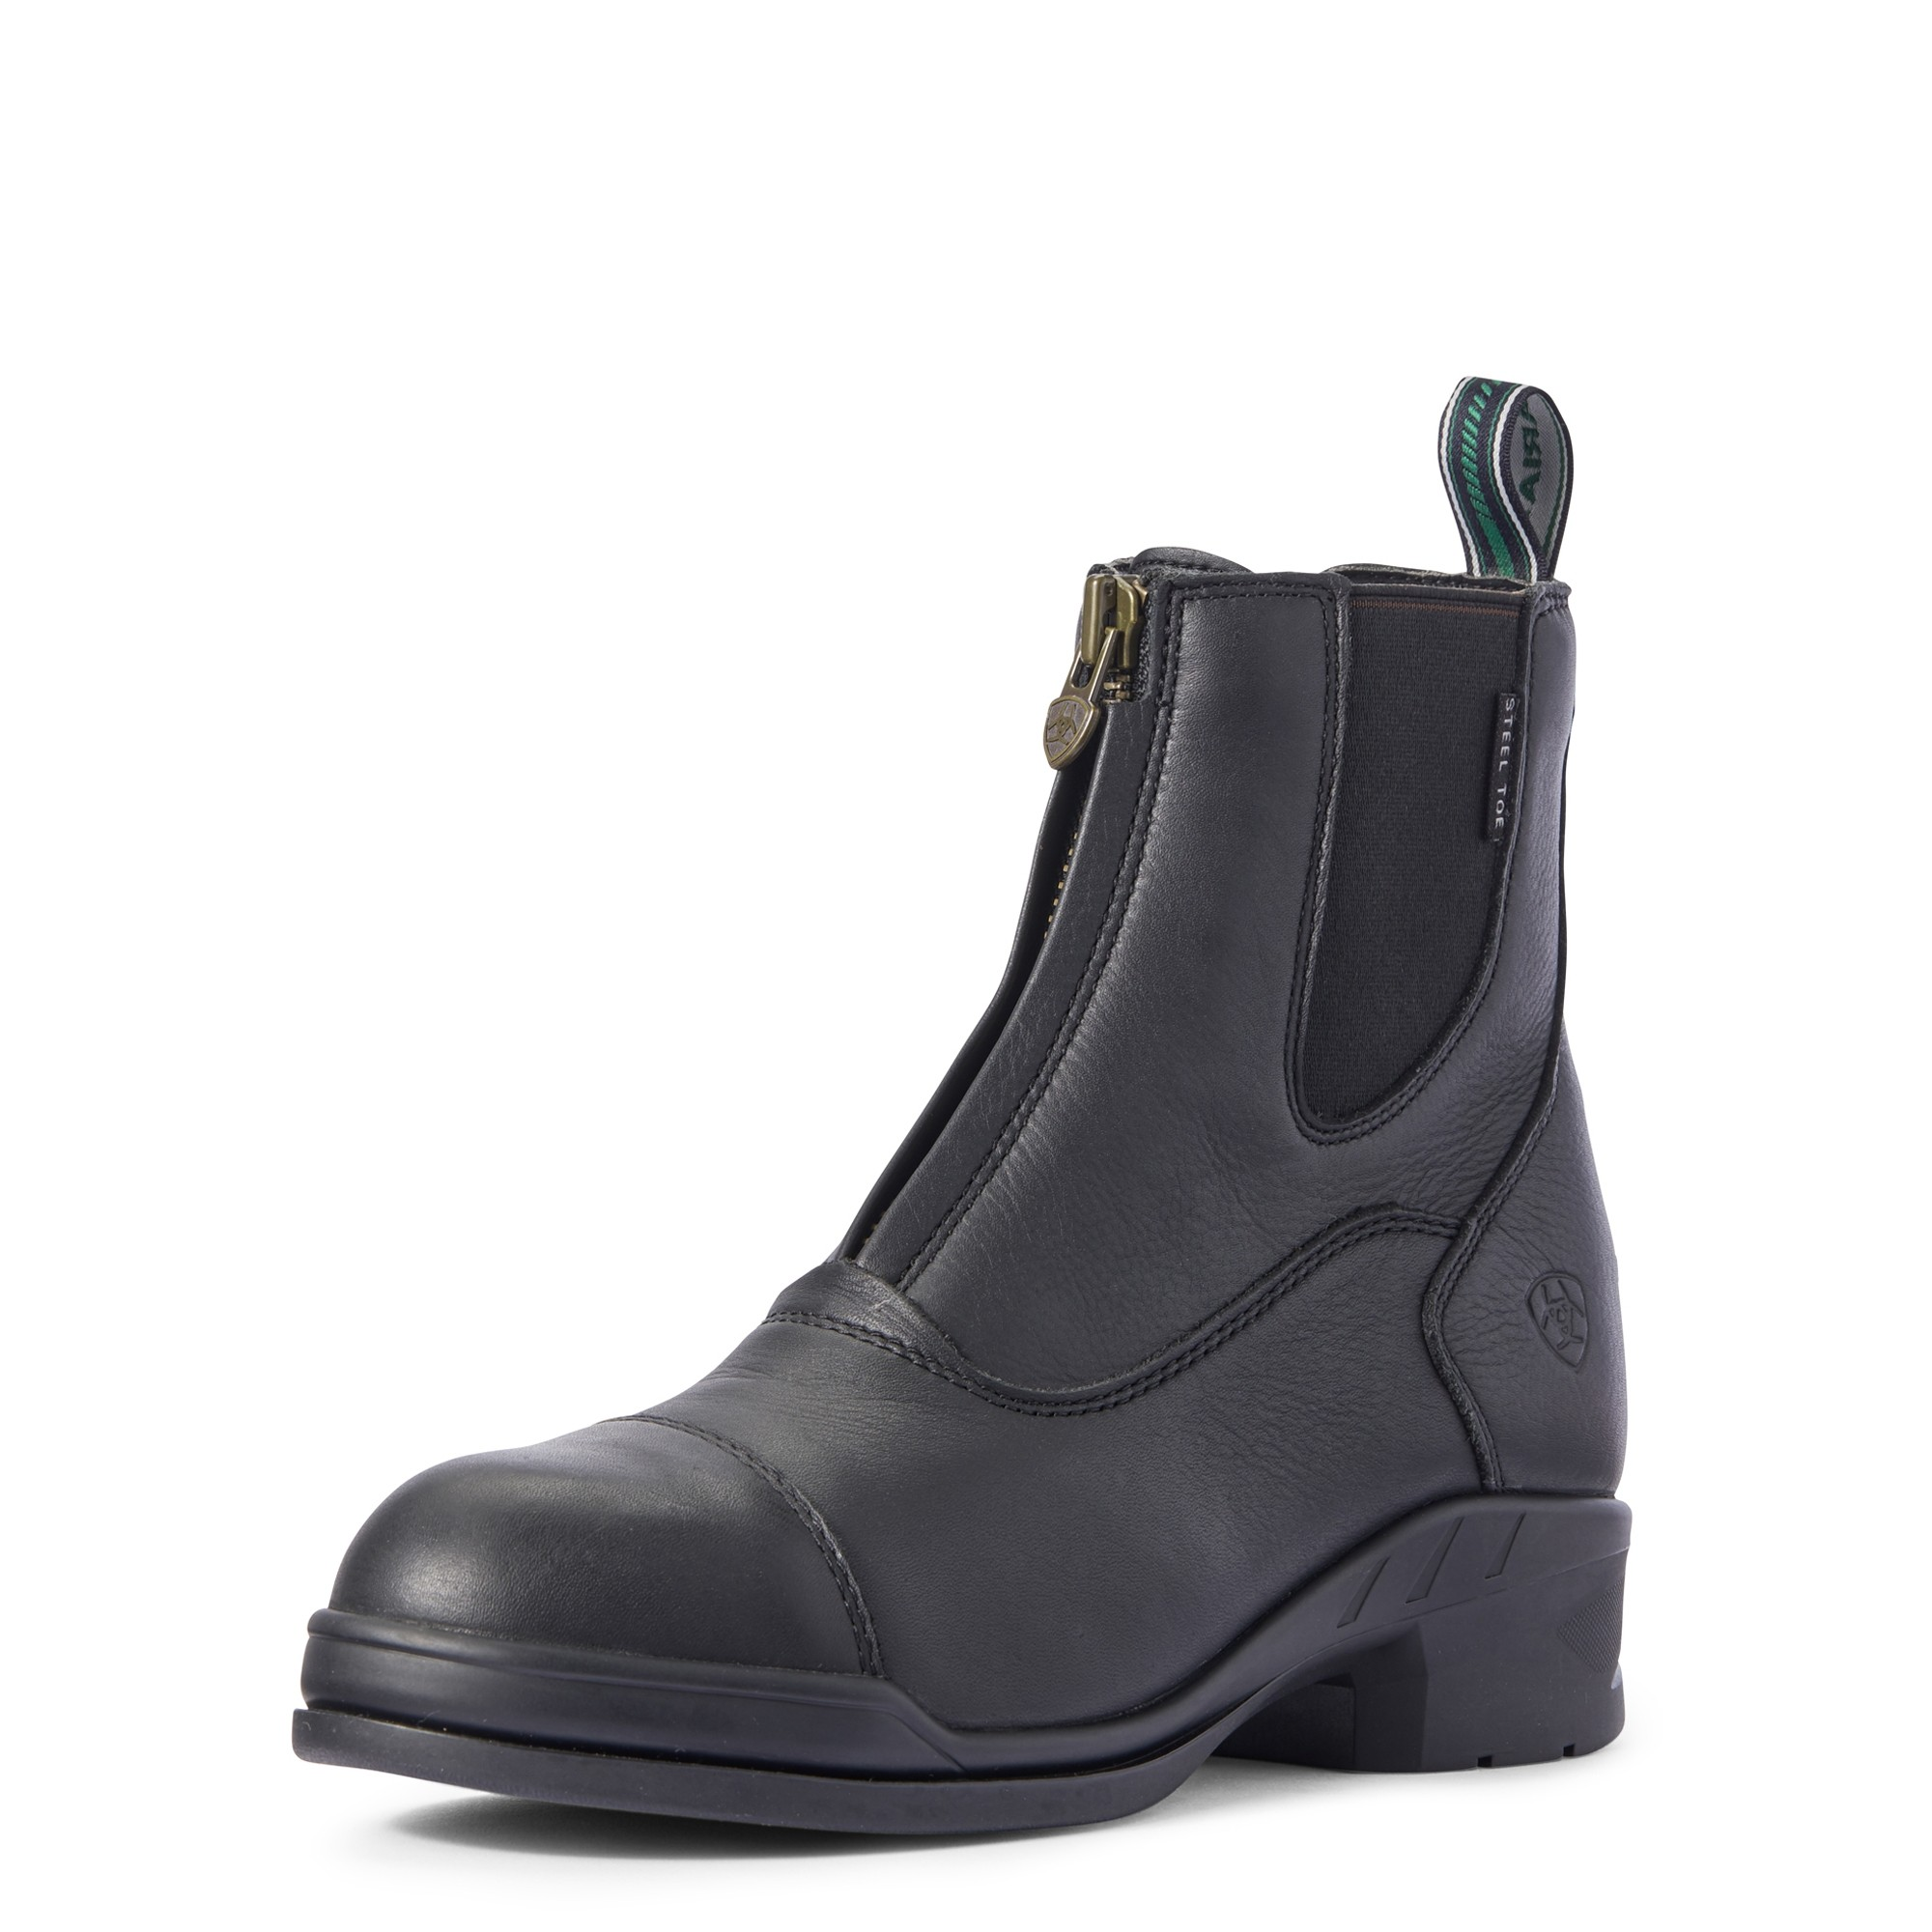 Ariat Womens Heritage IV Steel Toe Zip Paddock Boot  - Thomas Irving's equestrian and accessories store  Ariat Womens Heritage IV Steel Toe Zip Paddock Boot